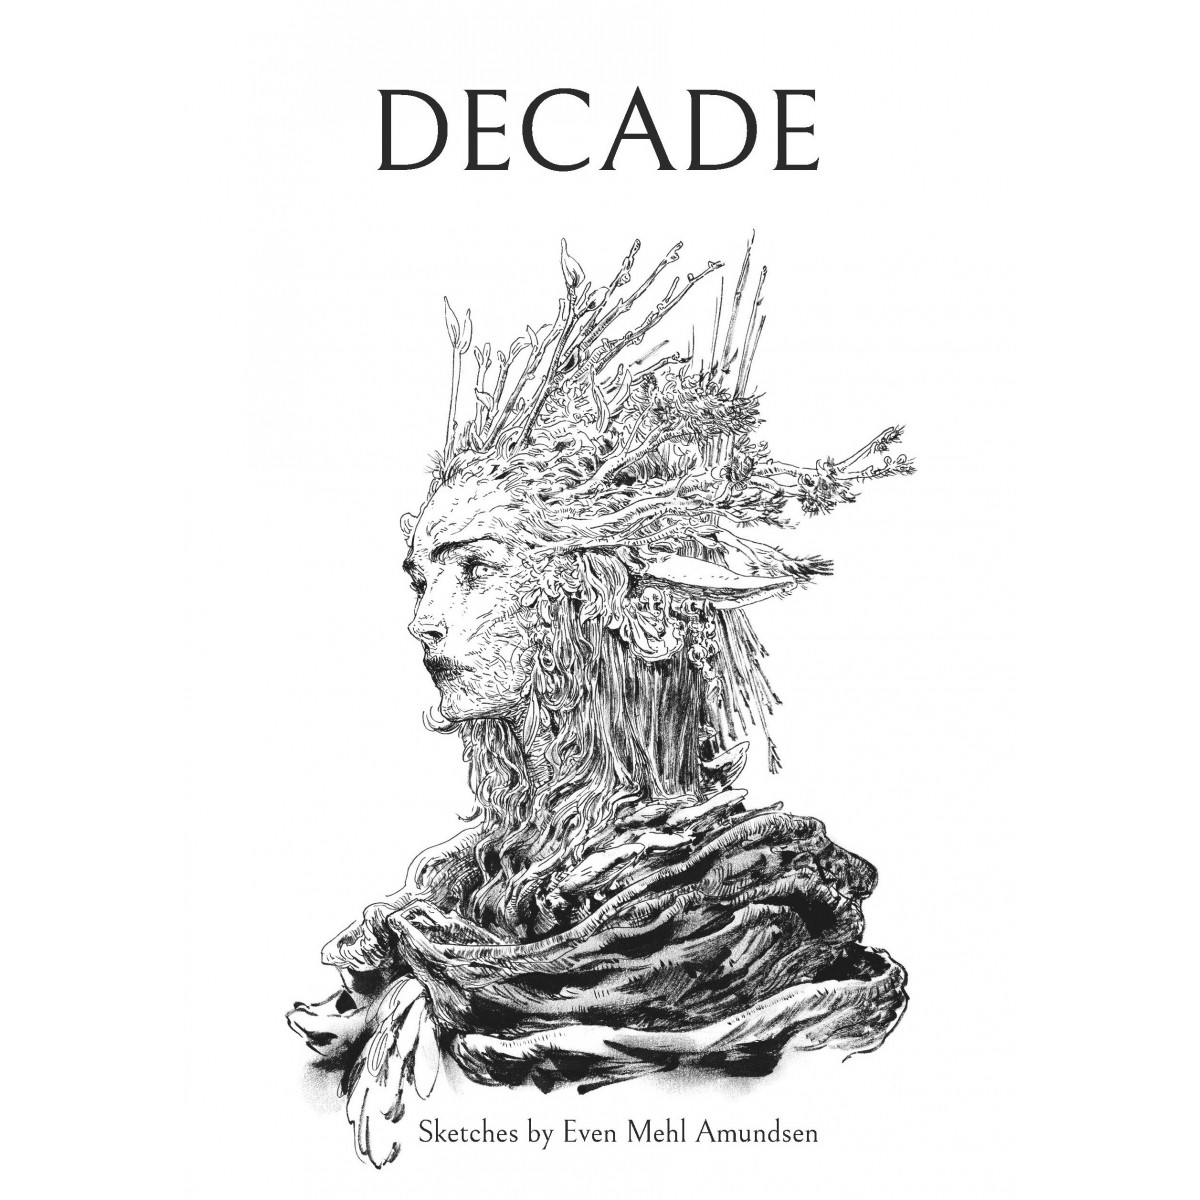 Decade: a sketchbook by Even Mehl Amundsen PRE-ORDER